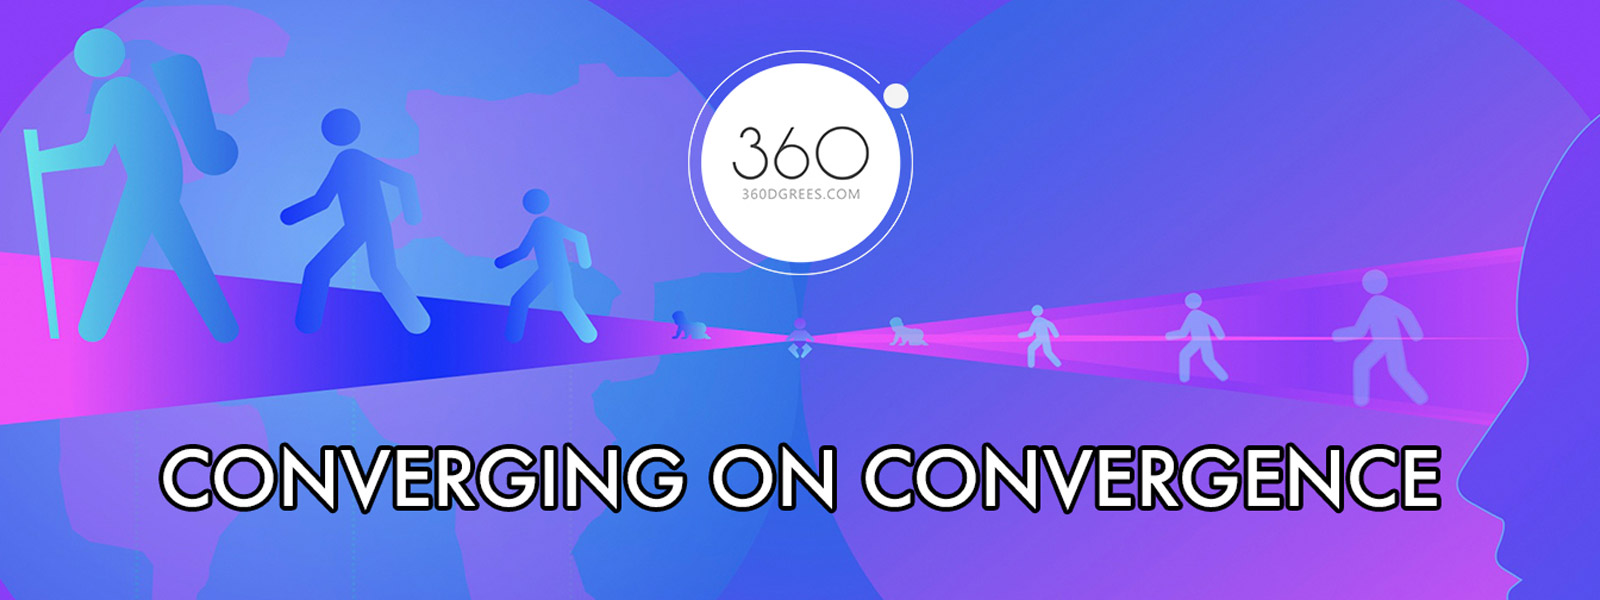 Converging on convergence